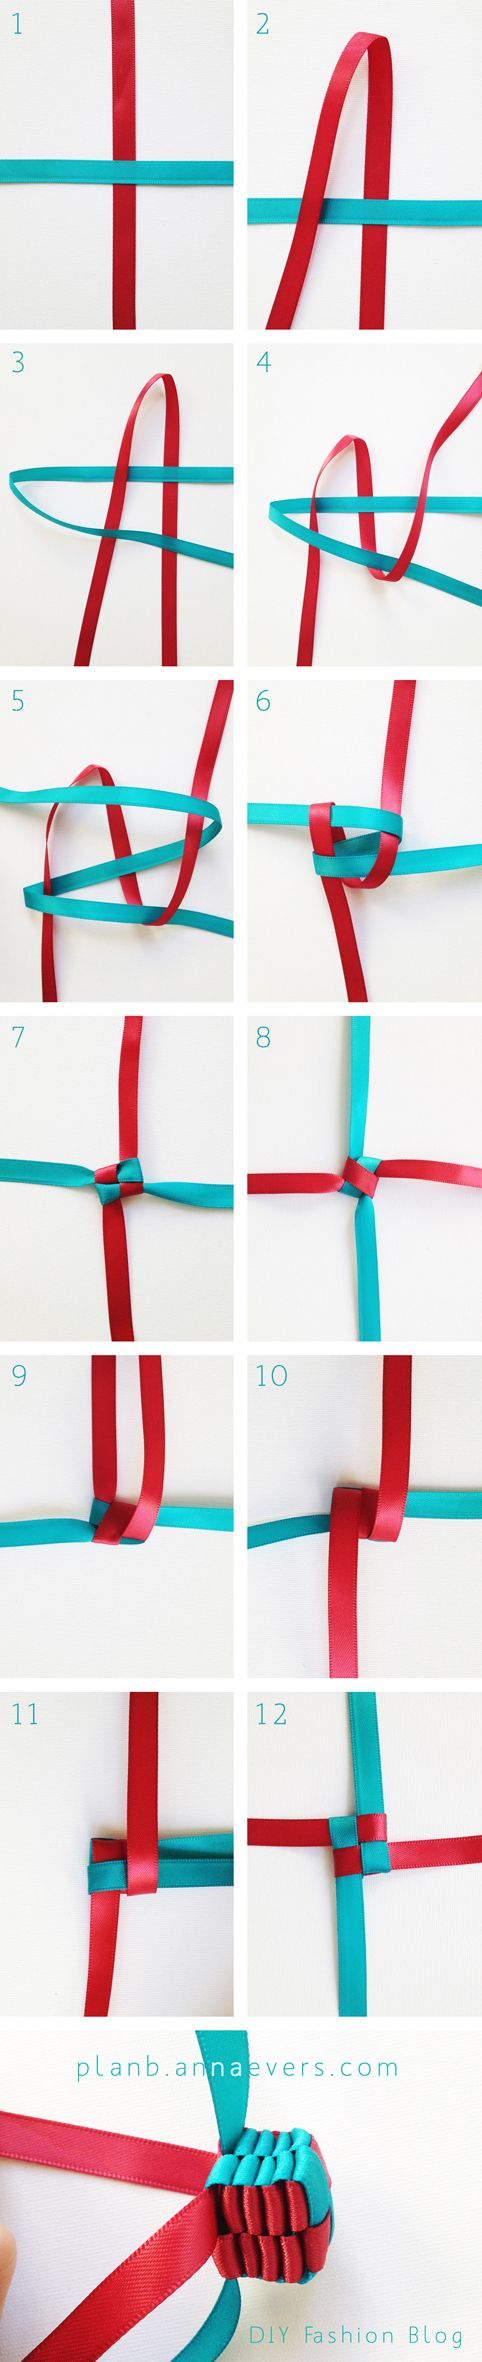 DIY CUBE BRAID I never n Knew how to start it...